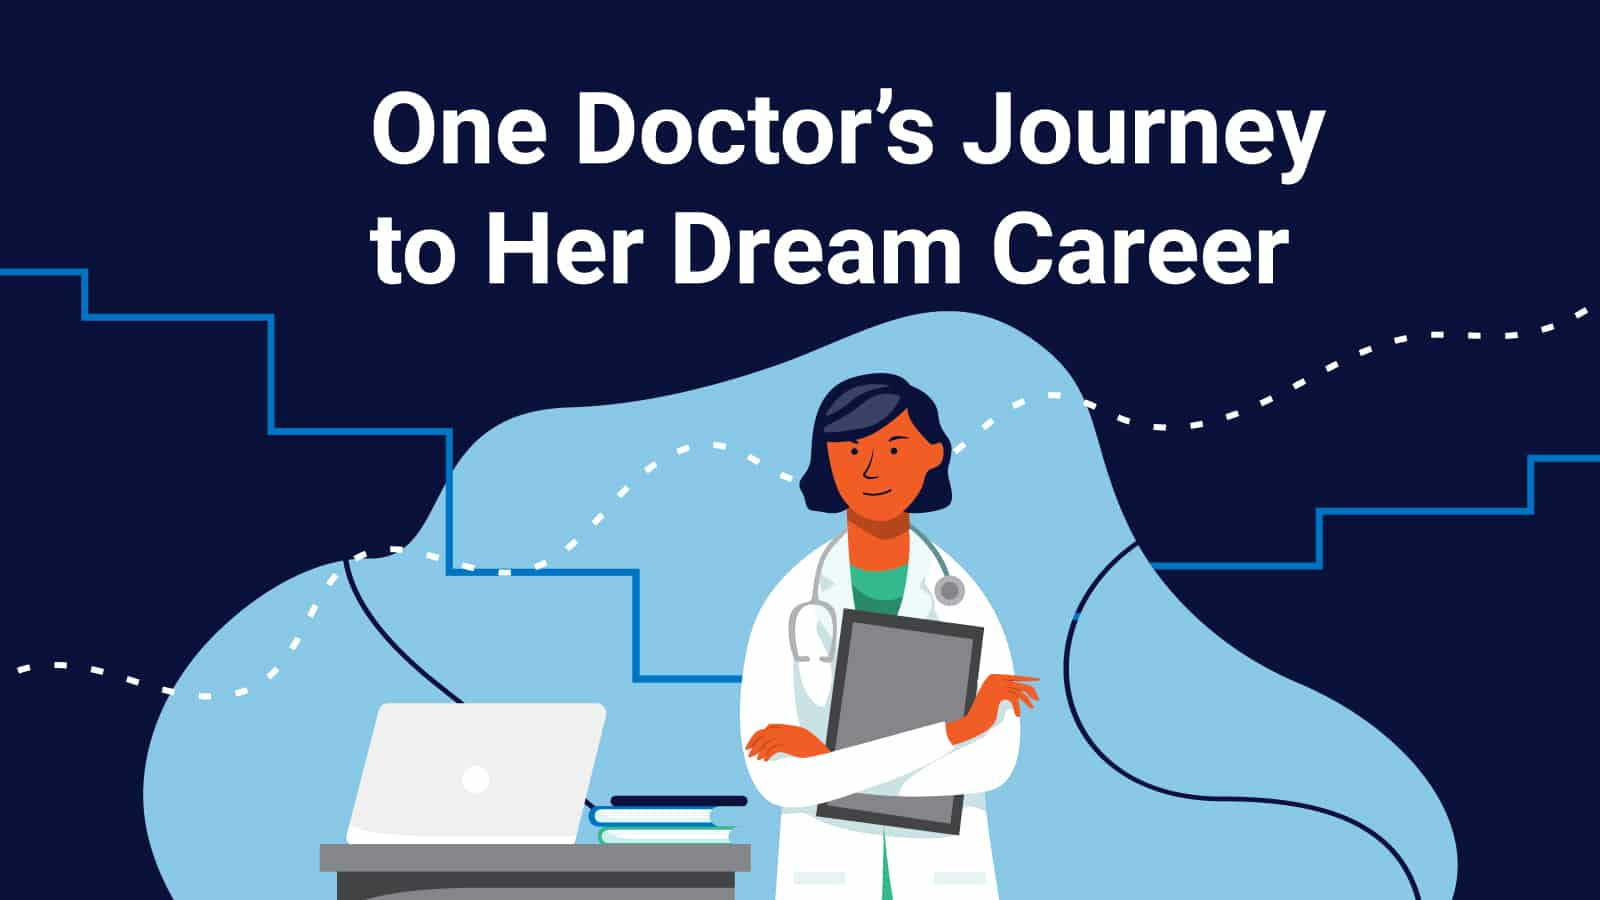 Illustration: Doctor with laptop and books reviews the path she took to succeed in med school